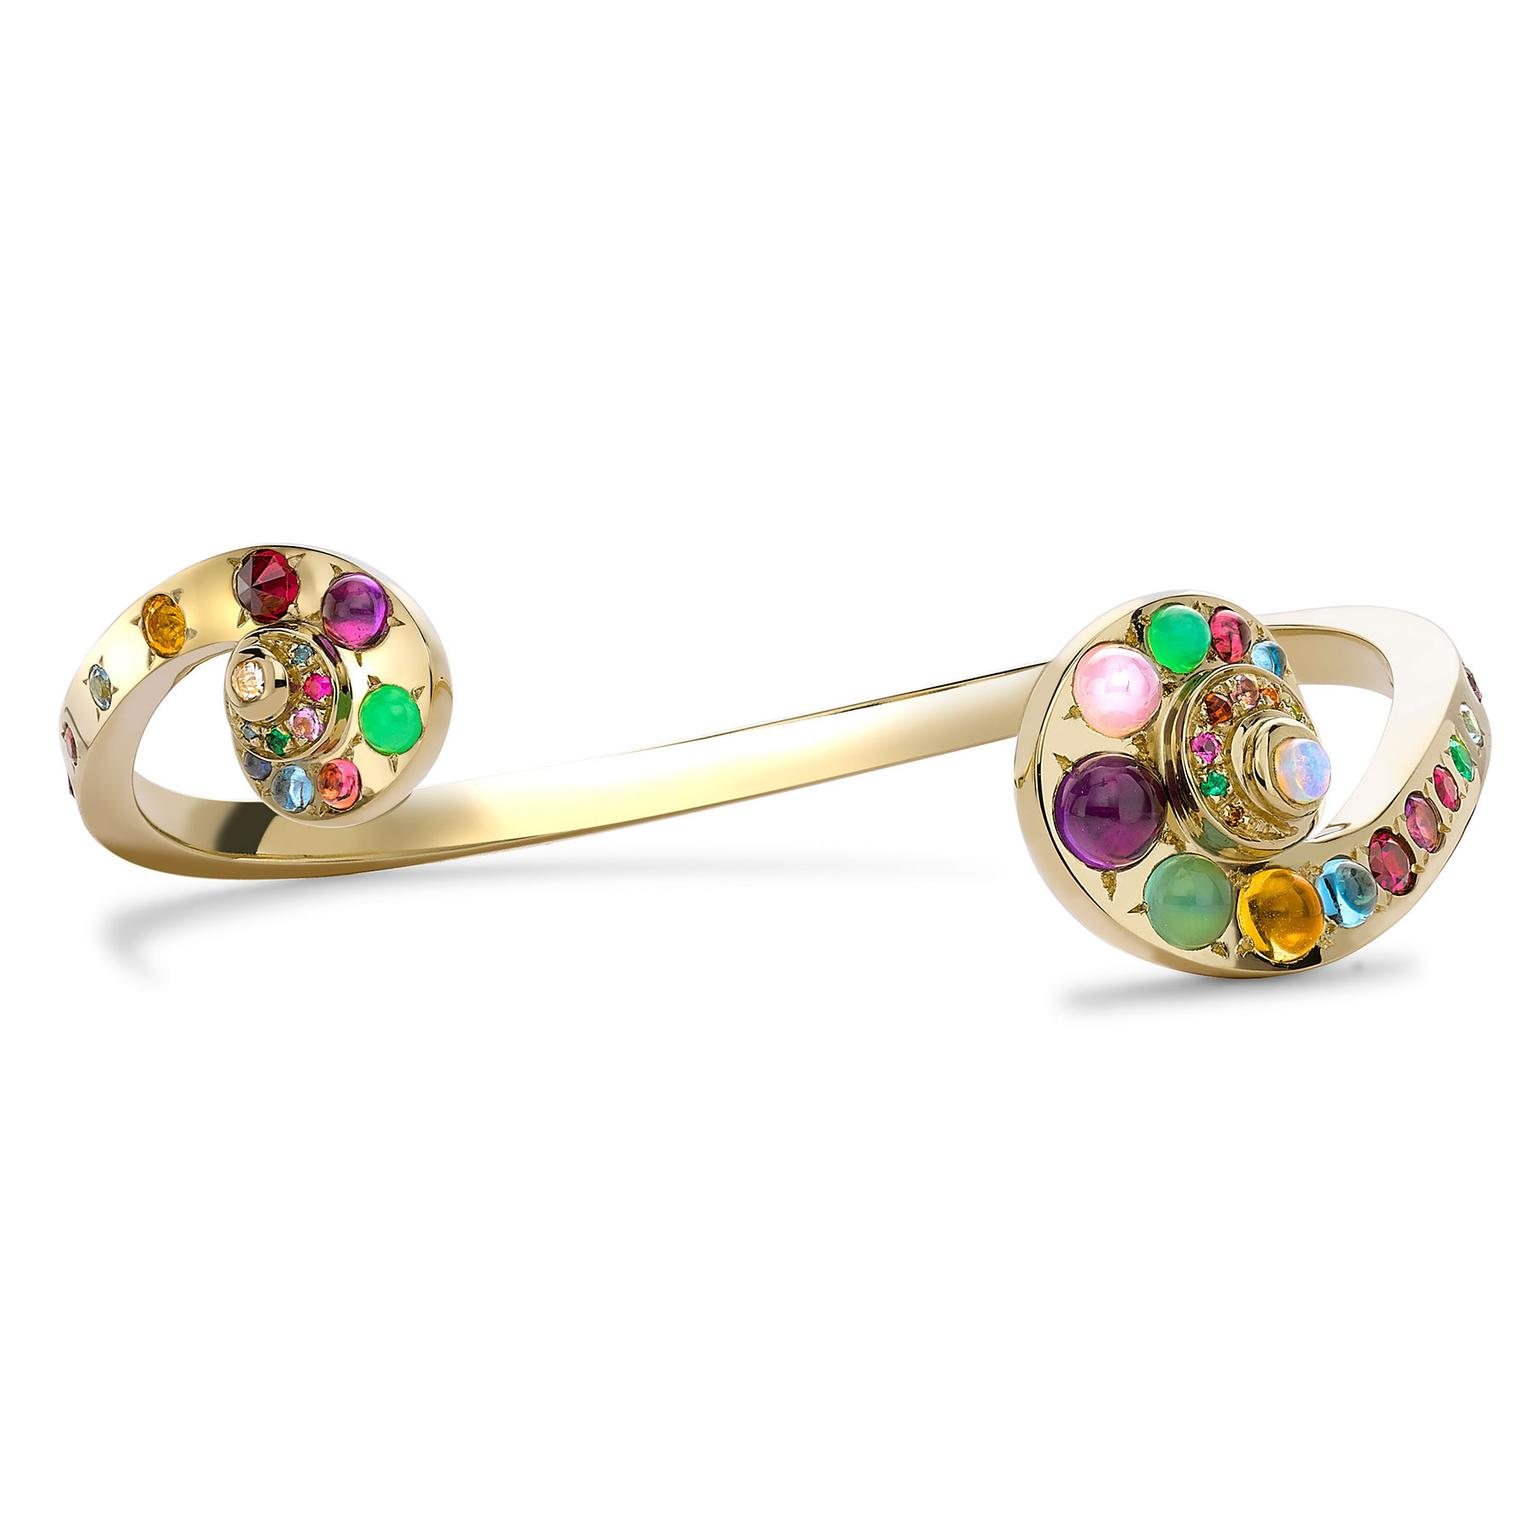 Venyx Moonshell yellow gold bangle with coloured gemstone cabochons